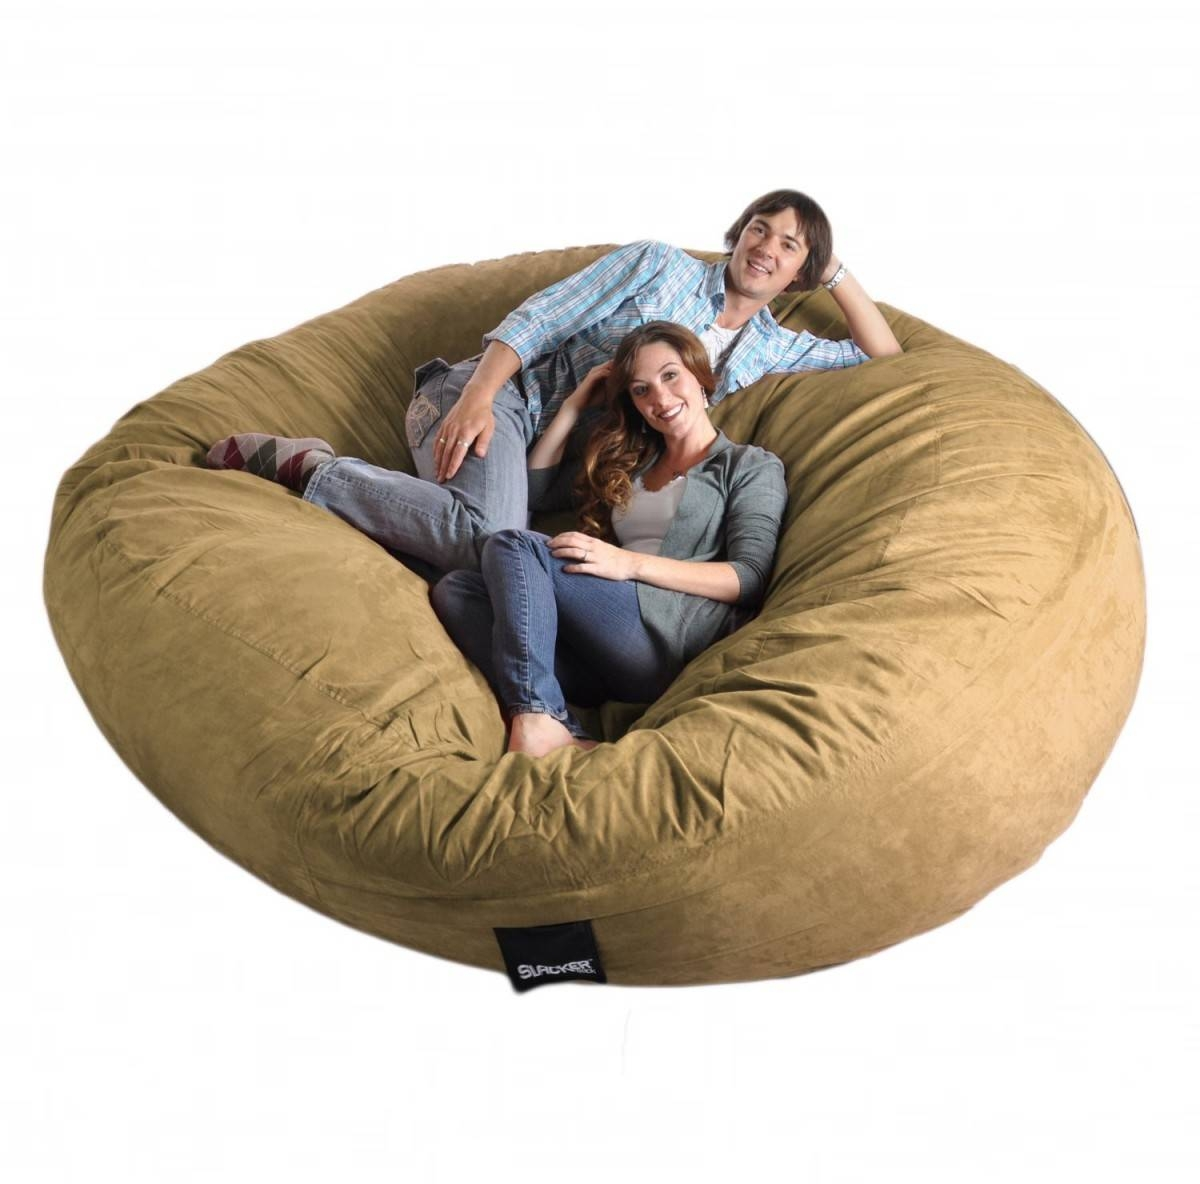 Giant Bean Bag Chairs For Adults 15 Best Giant Bean Bag Chairs